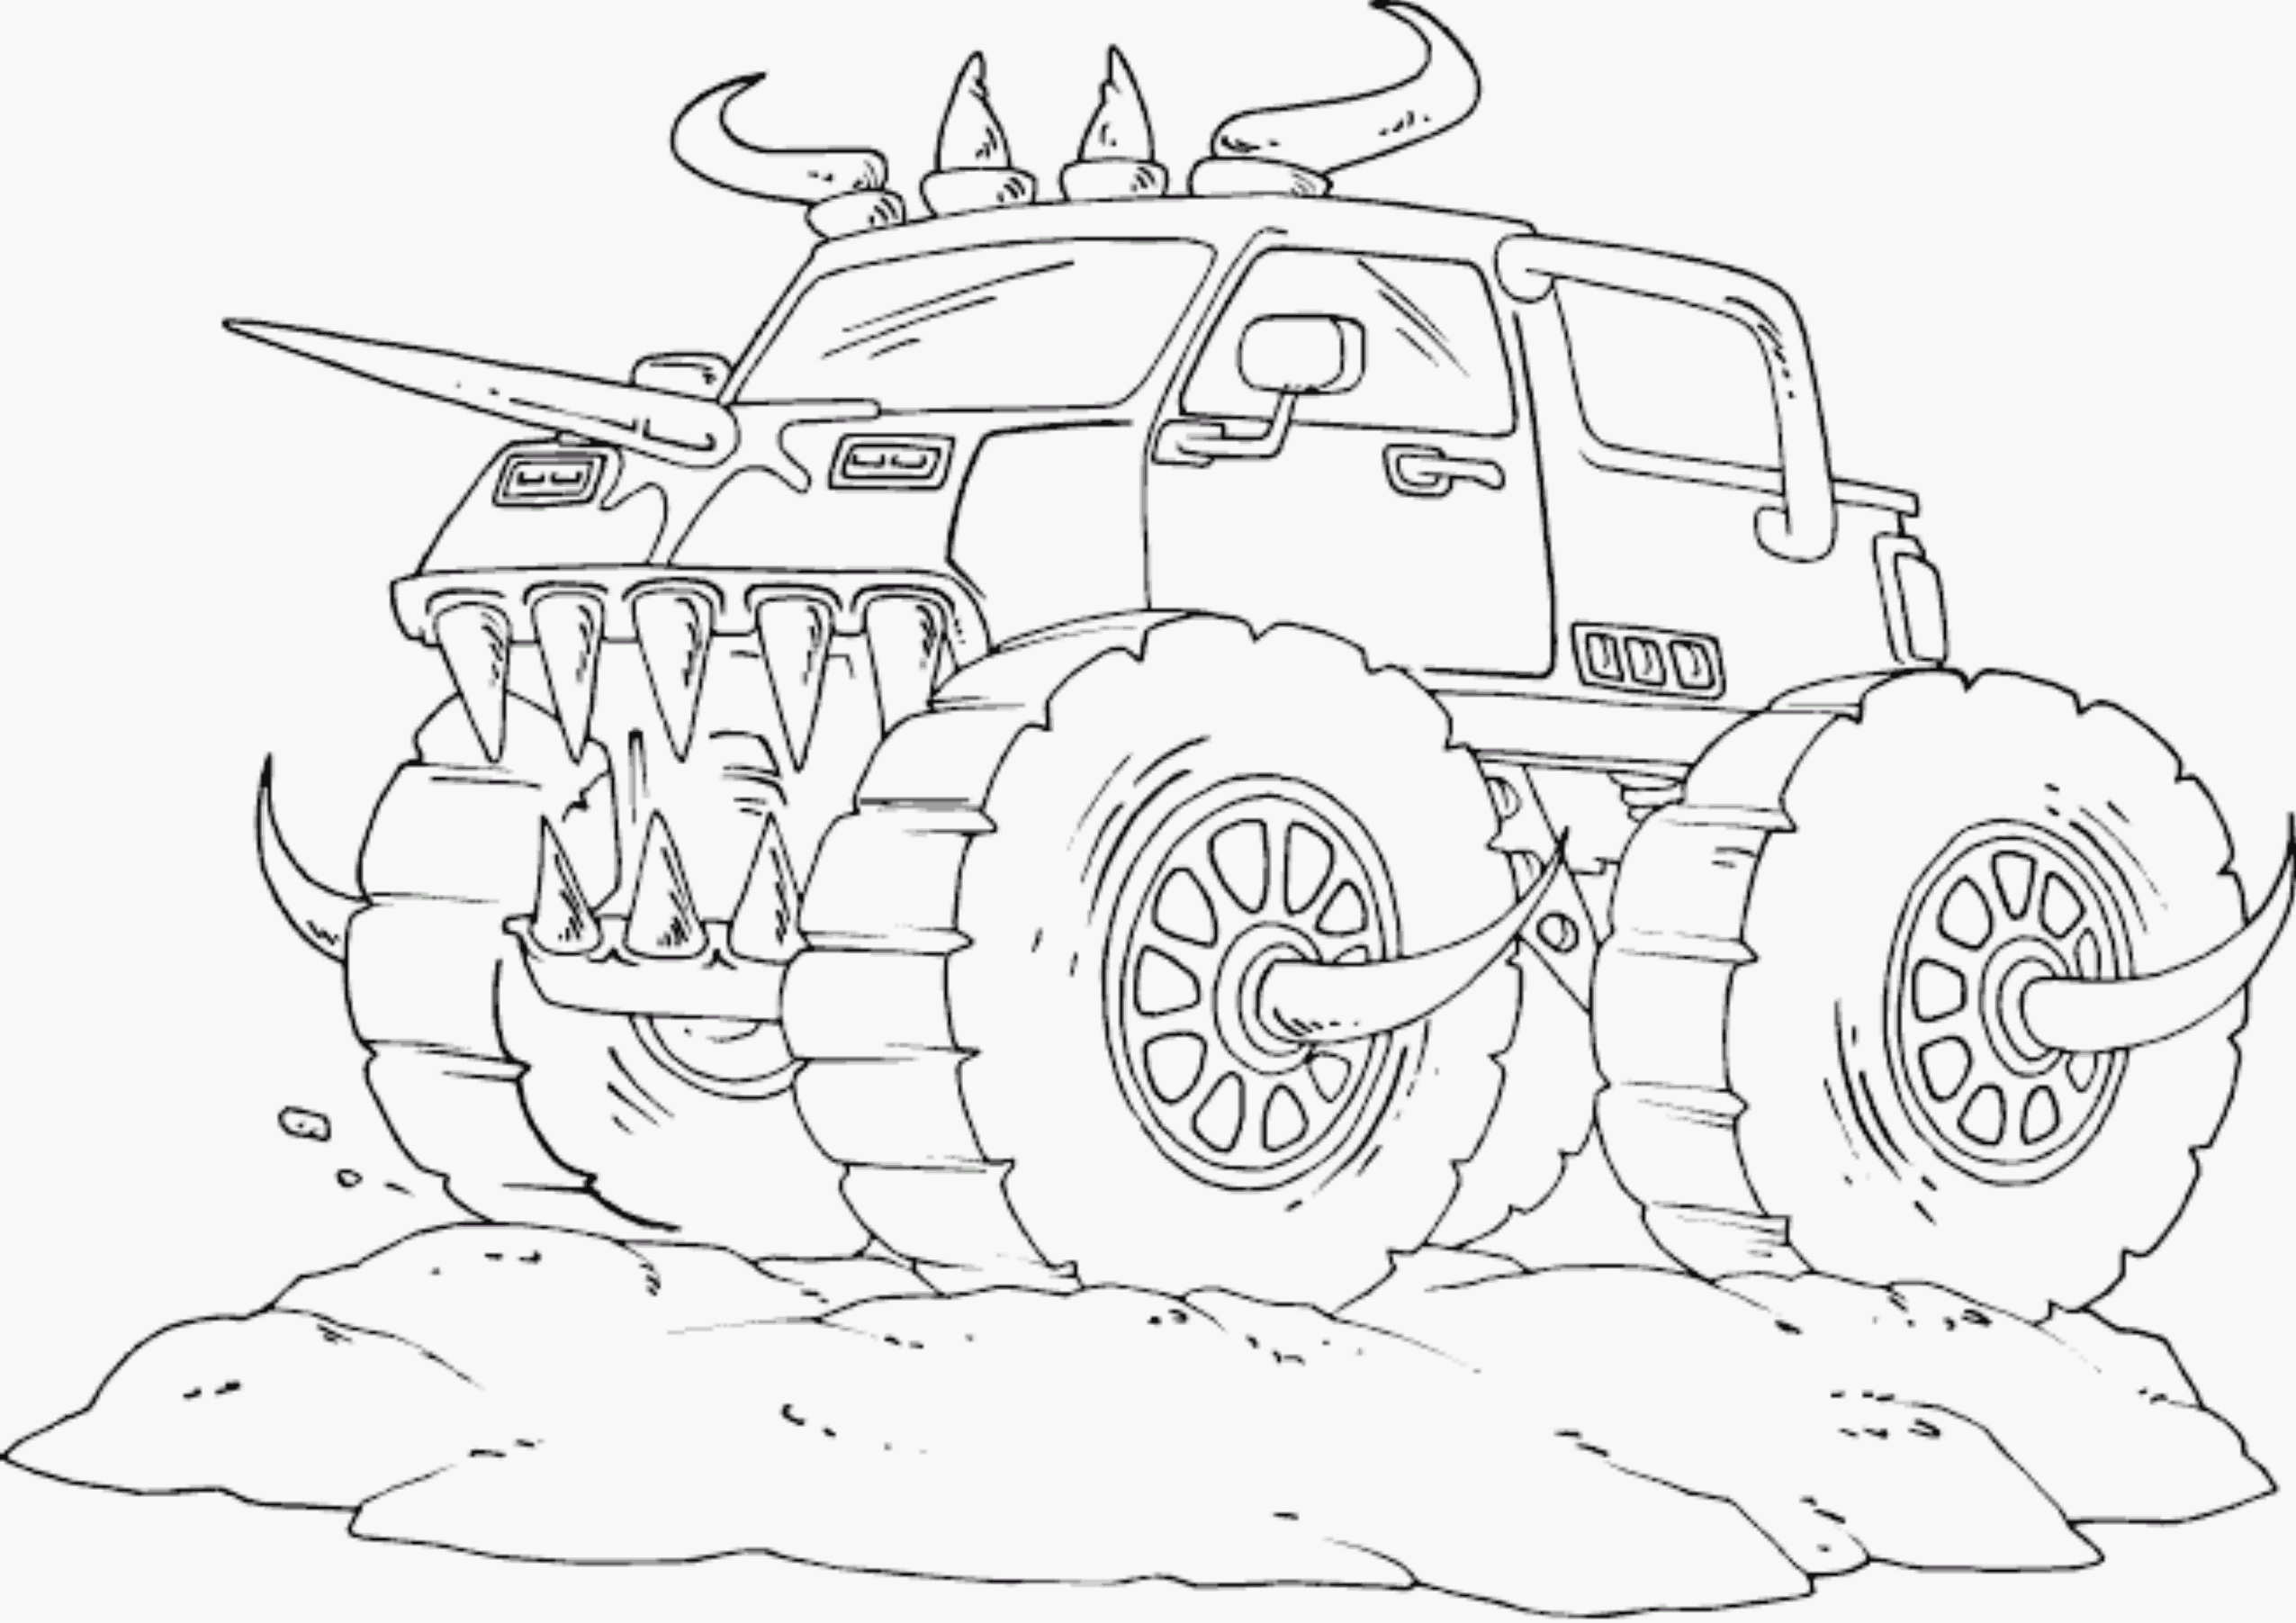 Cool Truck Coloring Pages At Getdrawings Free Download